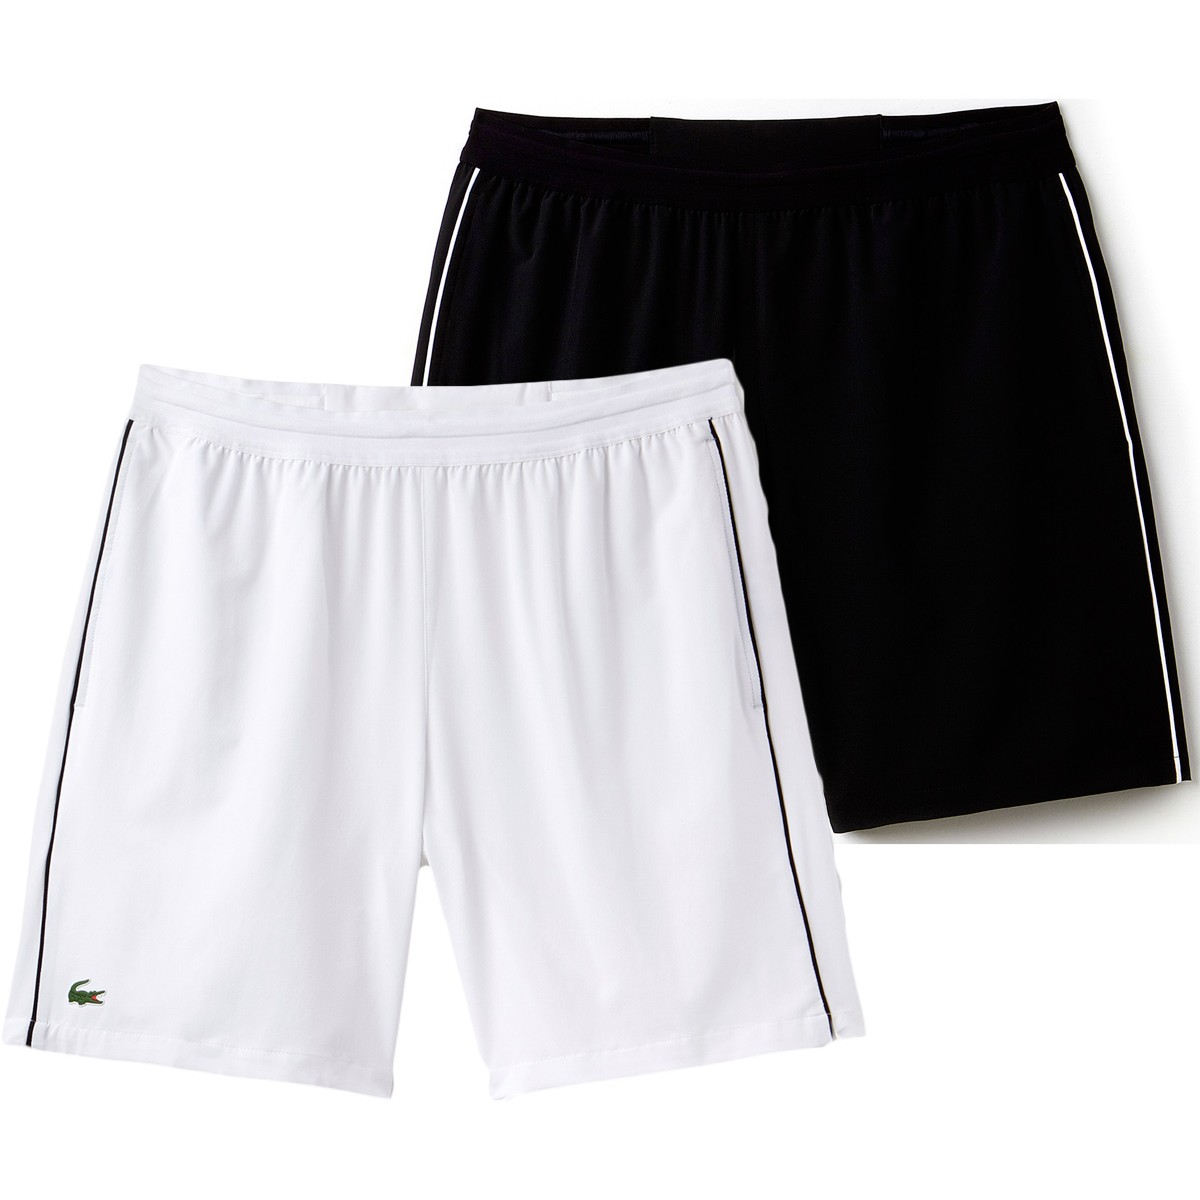 2c6966853f LACOSTE NOVAK DJOKOVIC COLLECTION SHORTS - LACOSTE - Men's ...